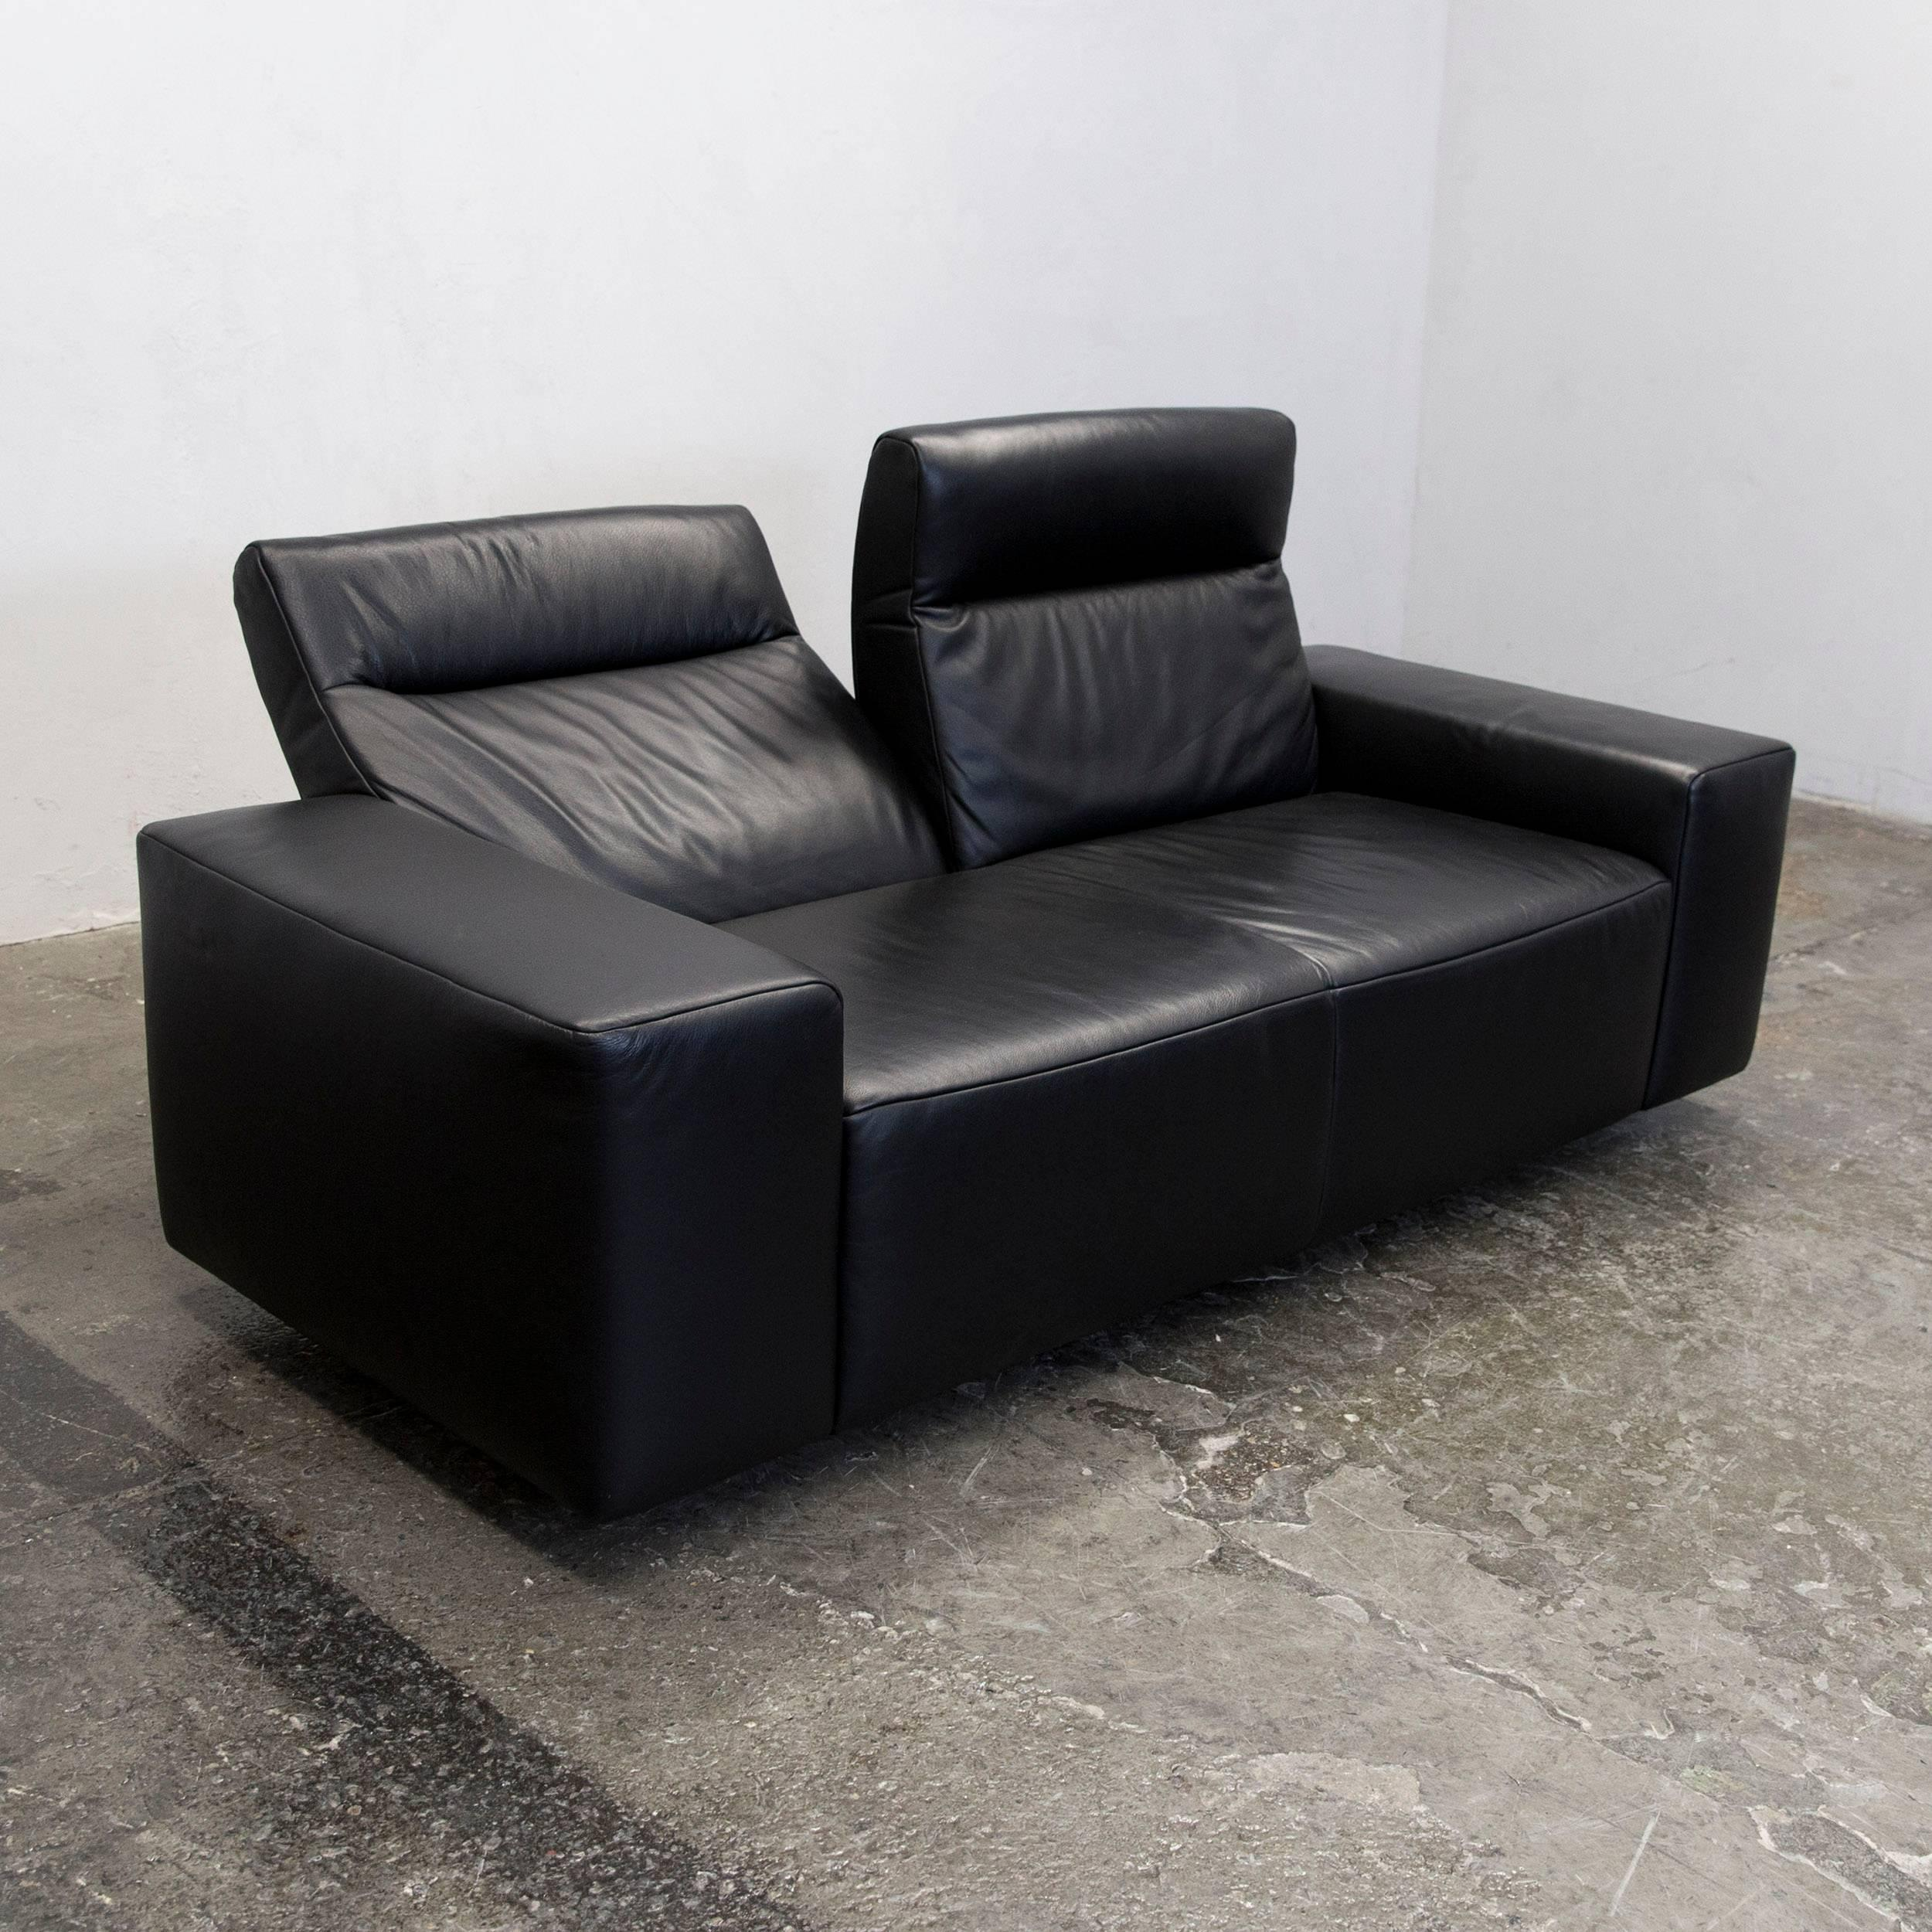 sofa schwarz sofa leder schwarz with sofa schwarz free. Black Bedroom Furniture Sets. Home Design Ideas